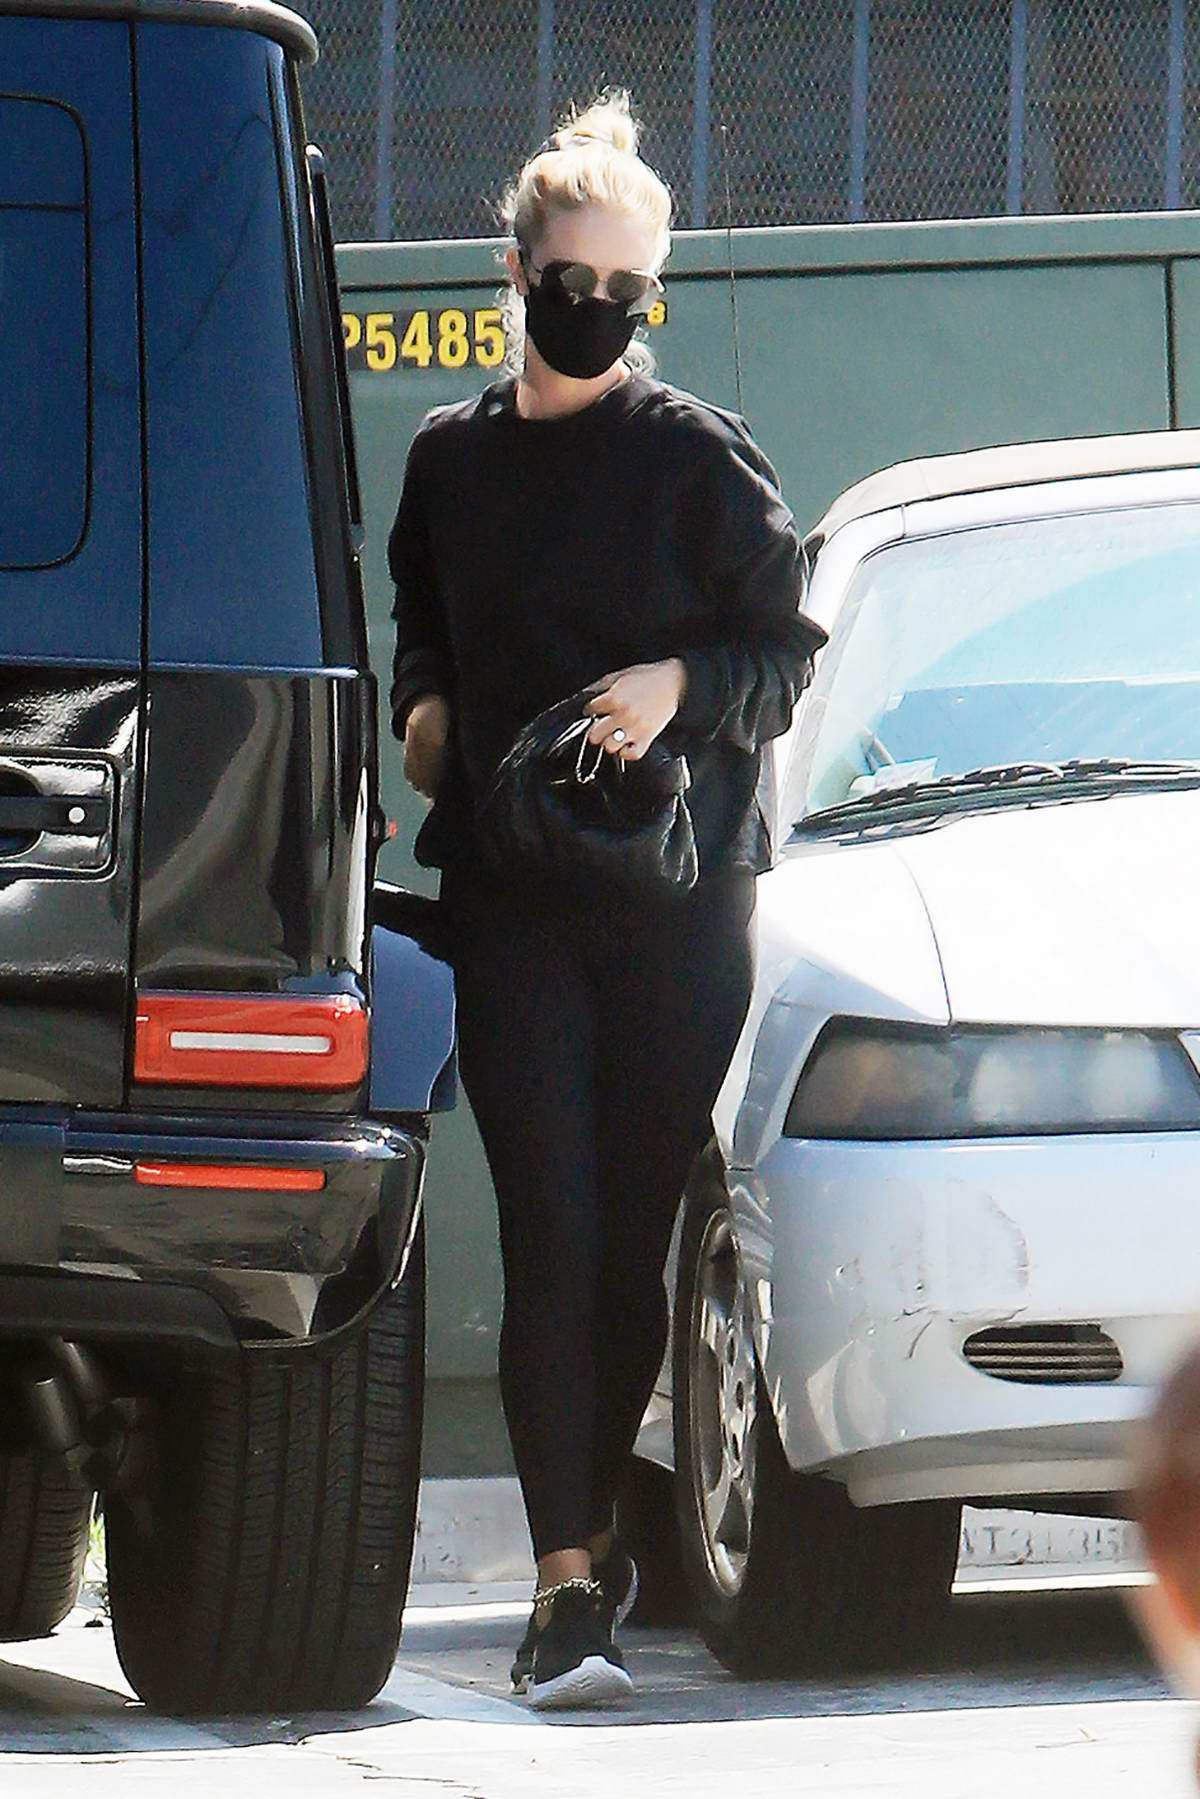 Rosie Huntington-Whiteley flashes her large engagement ring as she heads to a gym in Los Angeles